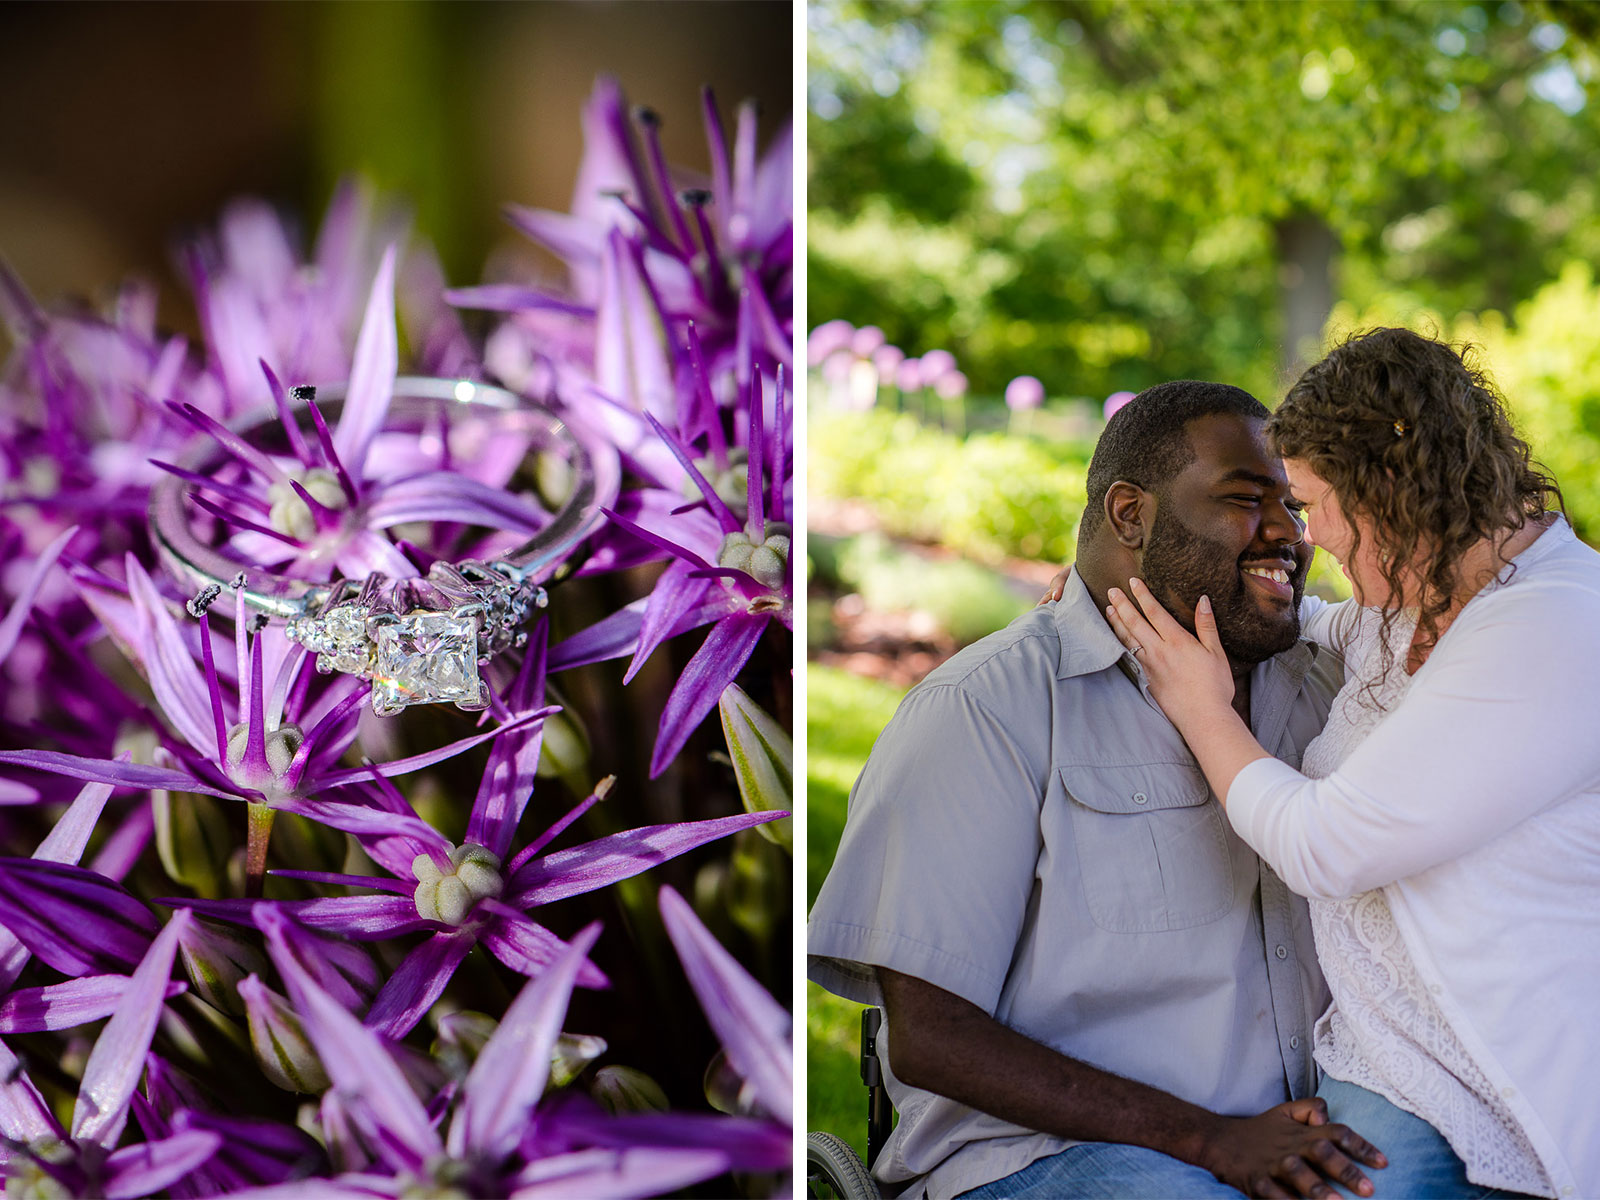 Eric_and_Christy_Photography_Blog_Laura_Jamal_Engagement-17-18